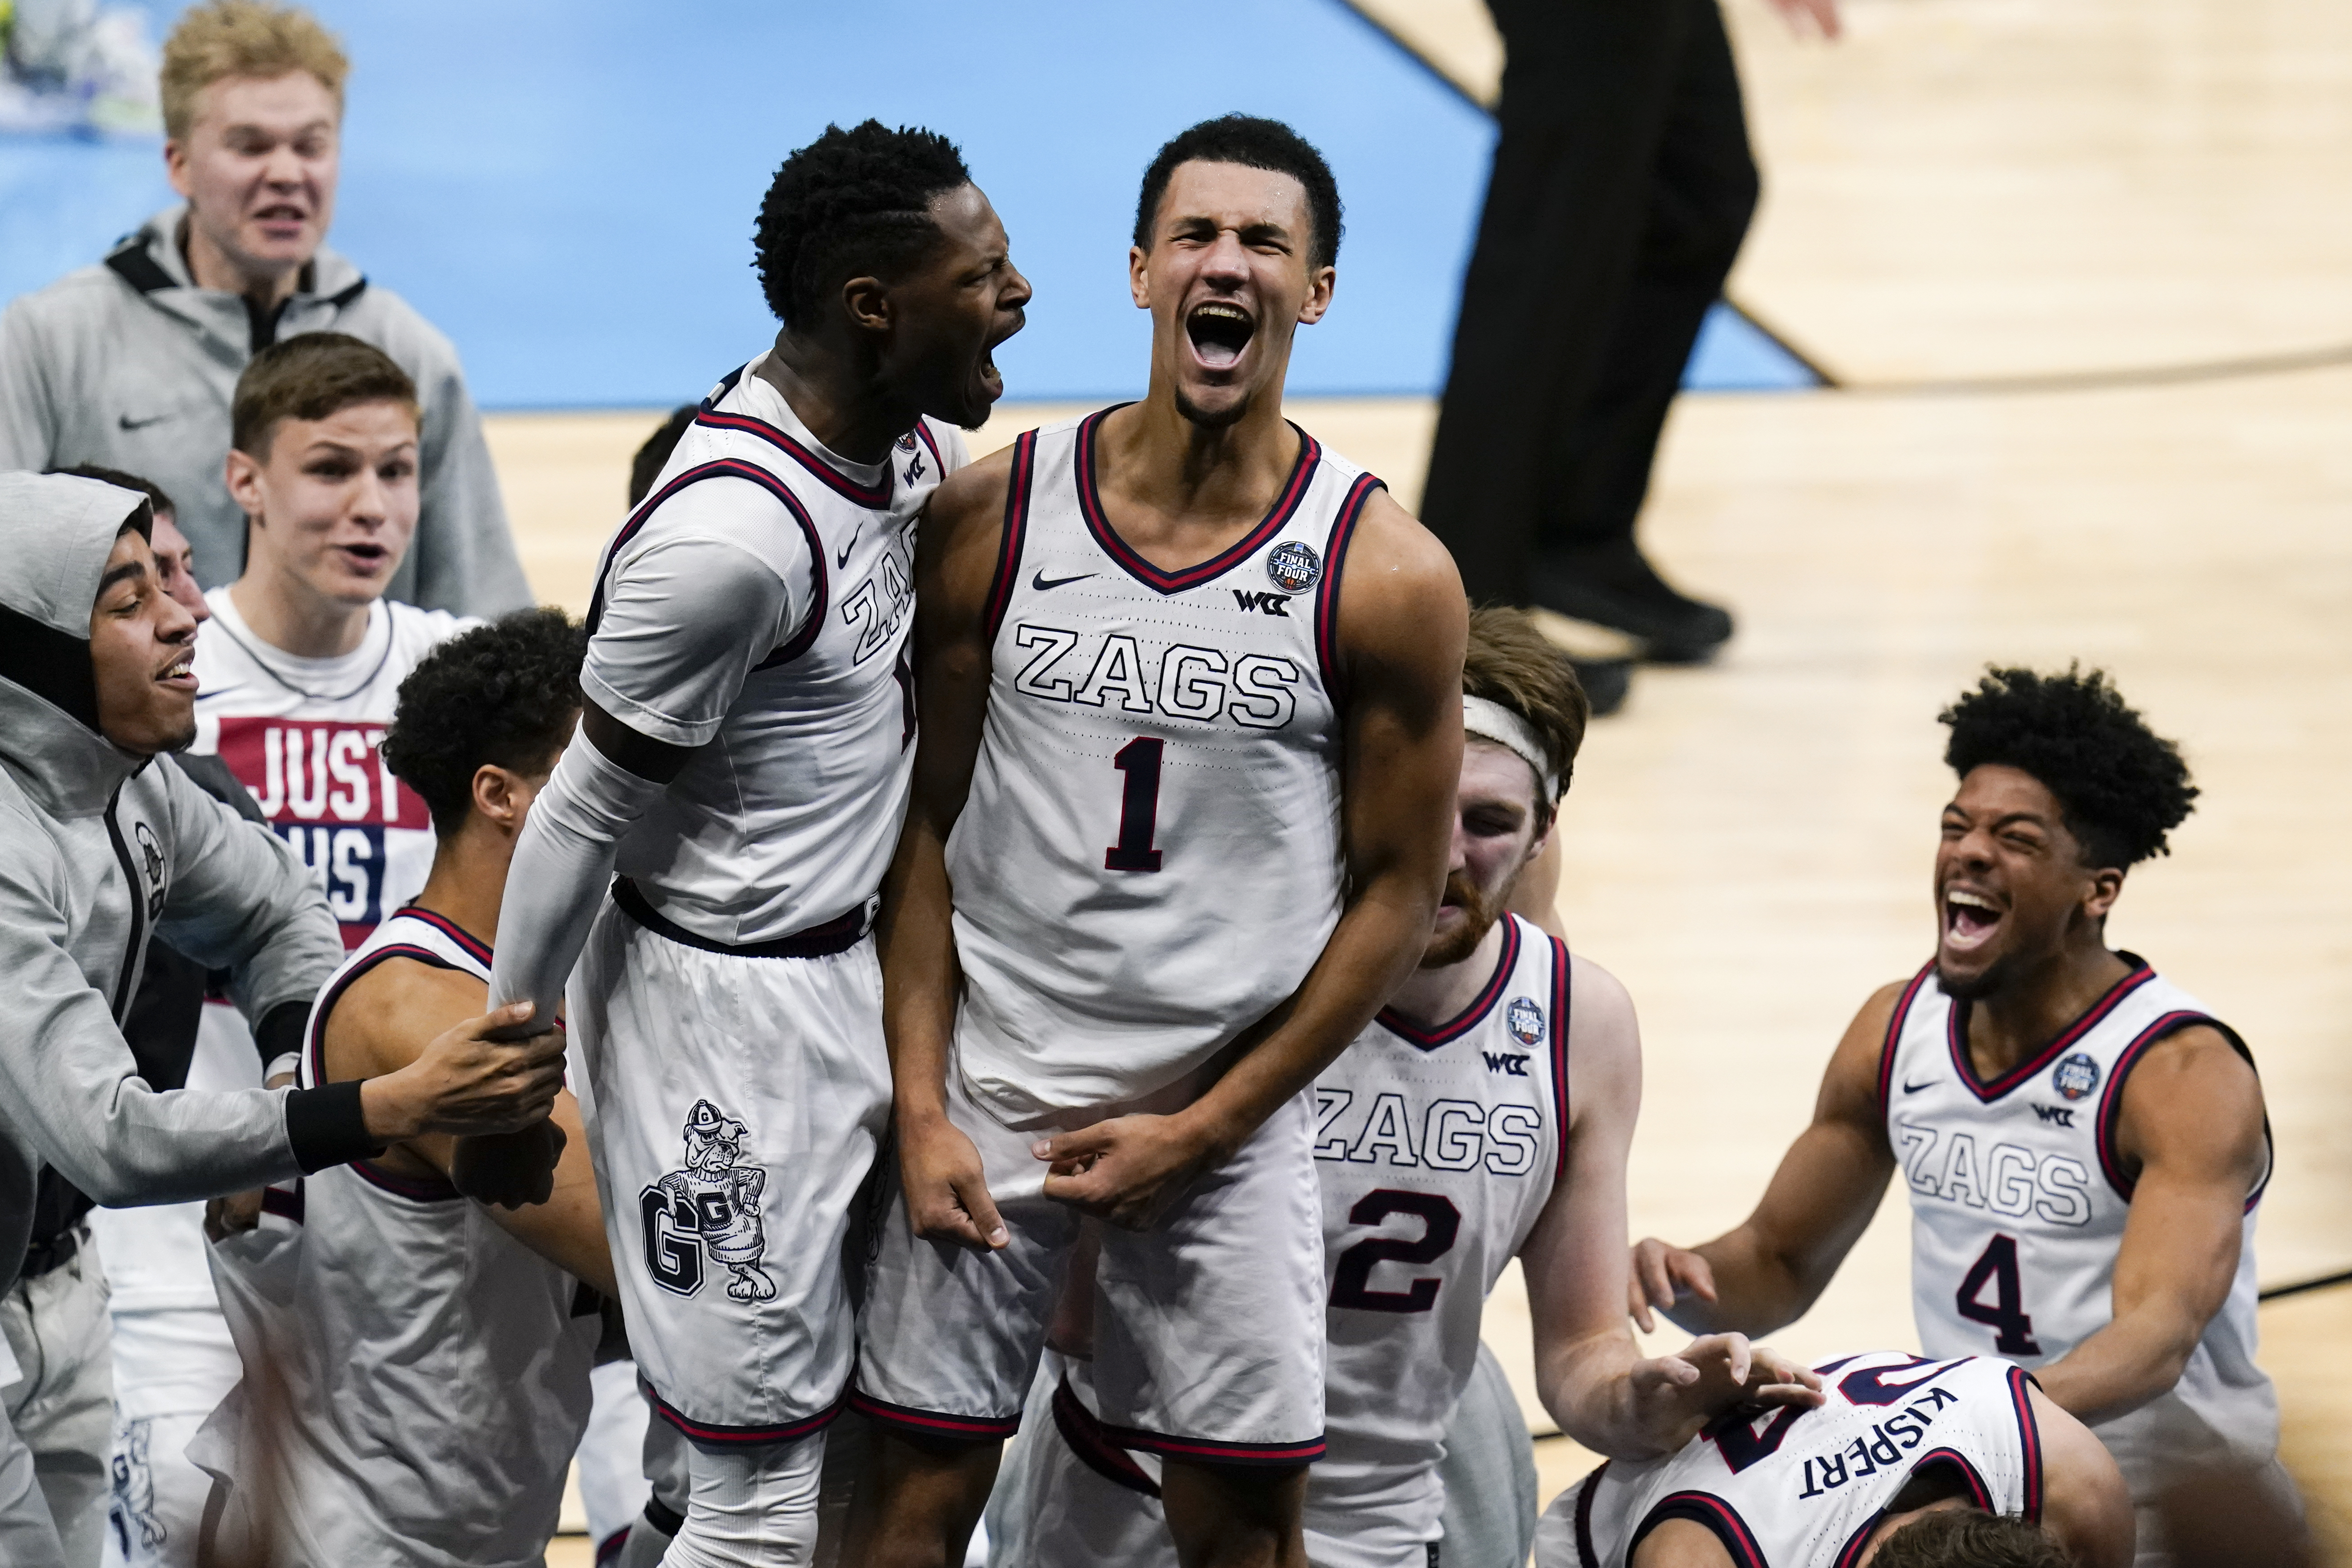 West has been the best in this year's NCAA Tournament | WVNS